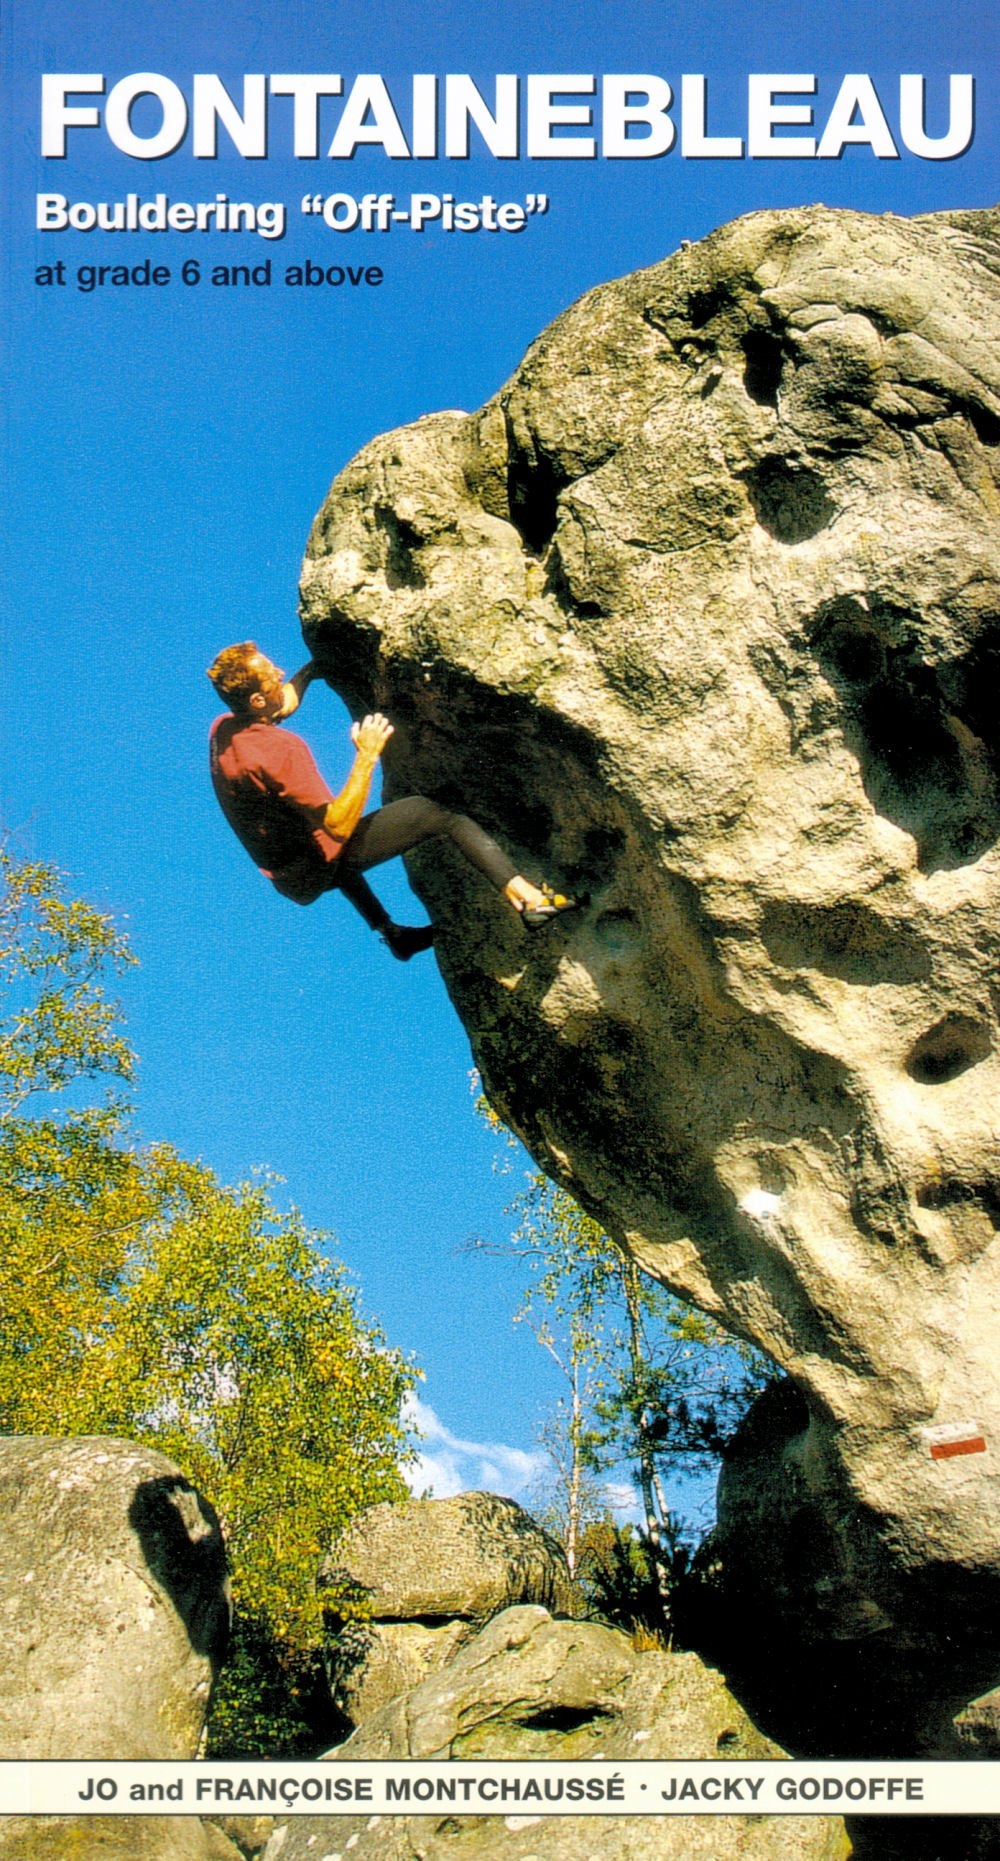 Fontainebleau Bouldering Off-Piste: At Grade 6 and Above